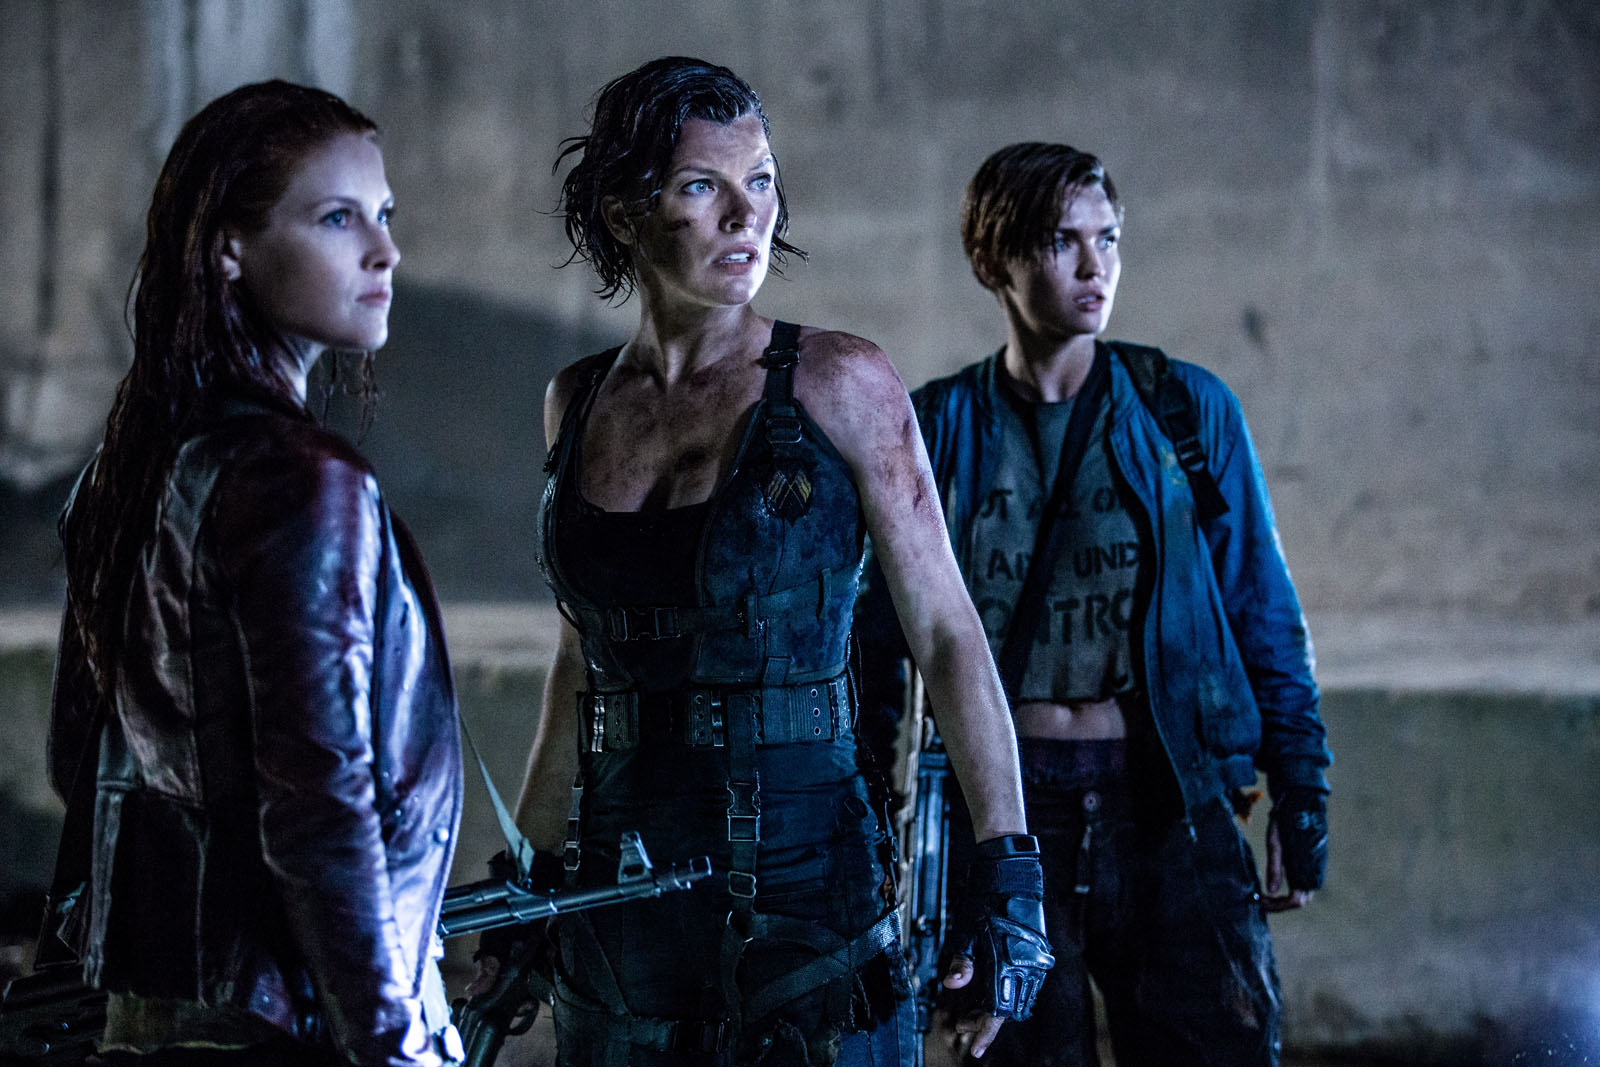 Regarder Resident Evil: The Final Chapter Complet Film Torrent